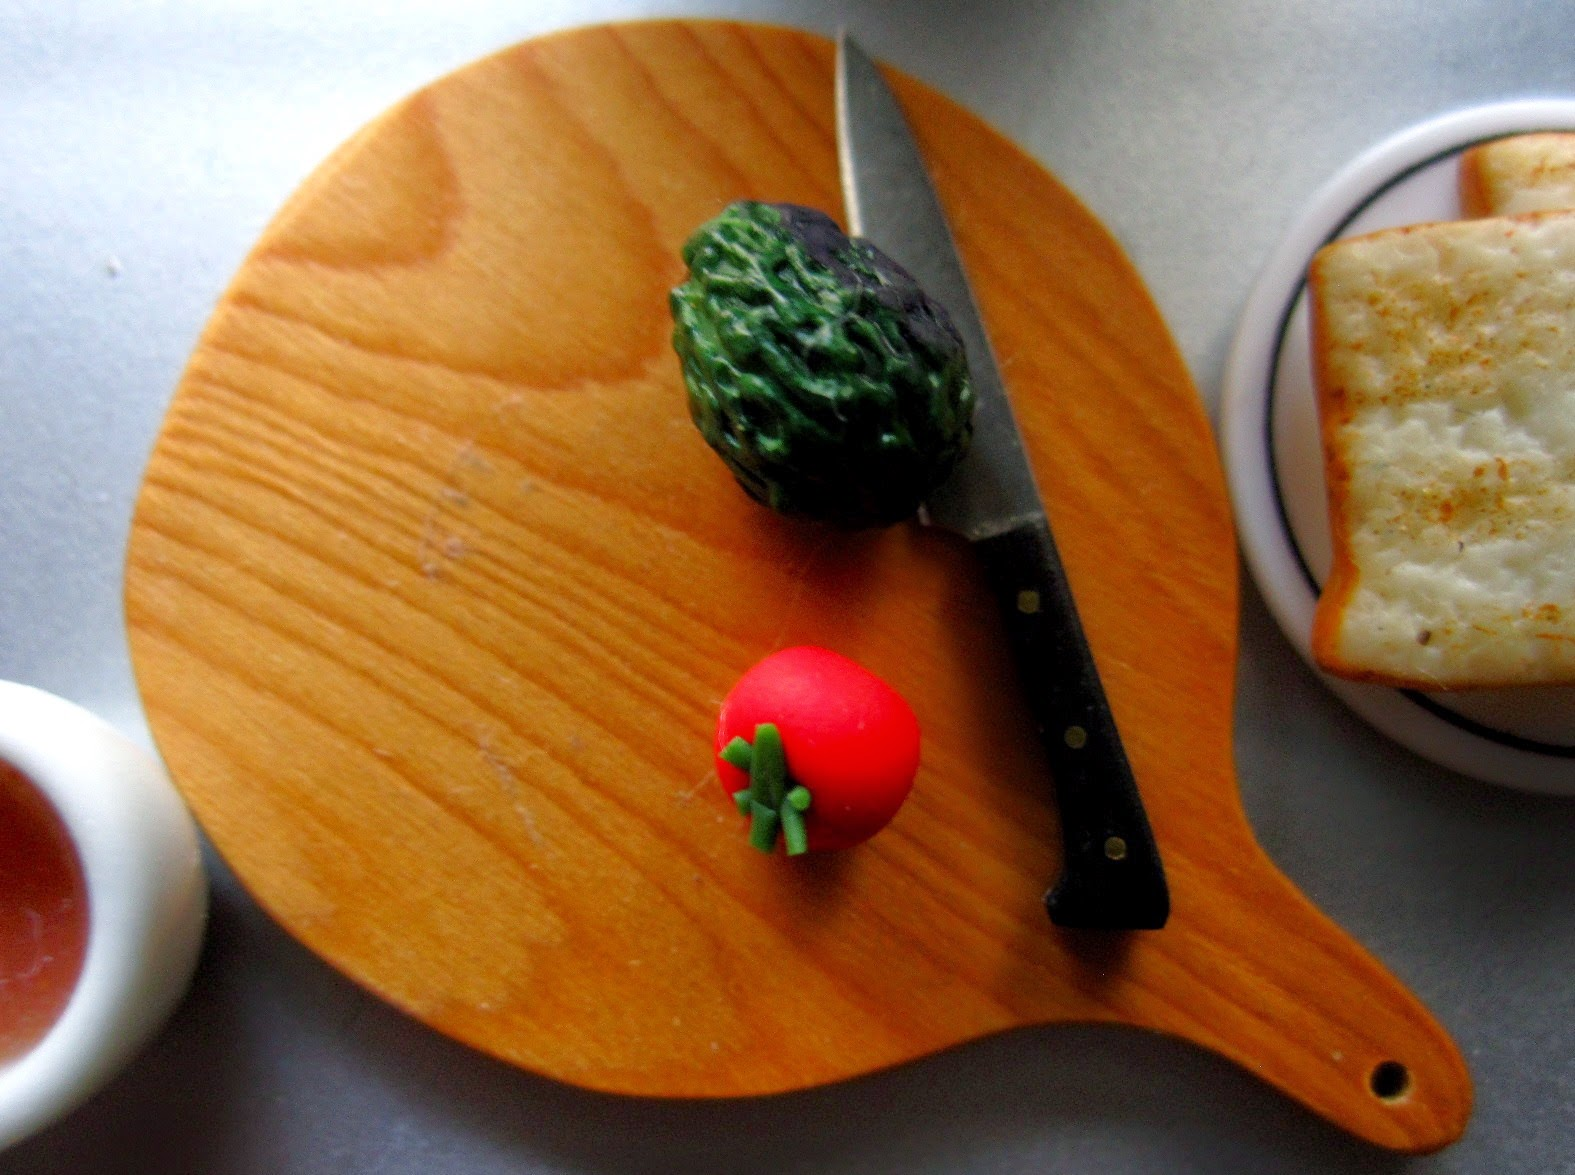 Modern dolls' house miniature chopping board with a knife, an avocado and a tomato on it. Next to it is a plate of toast and a mug of tea.